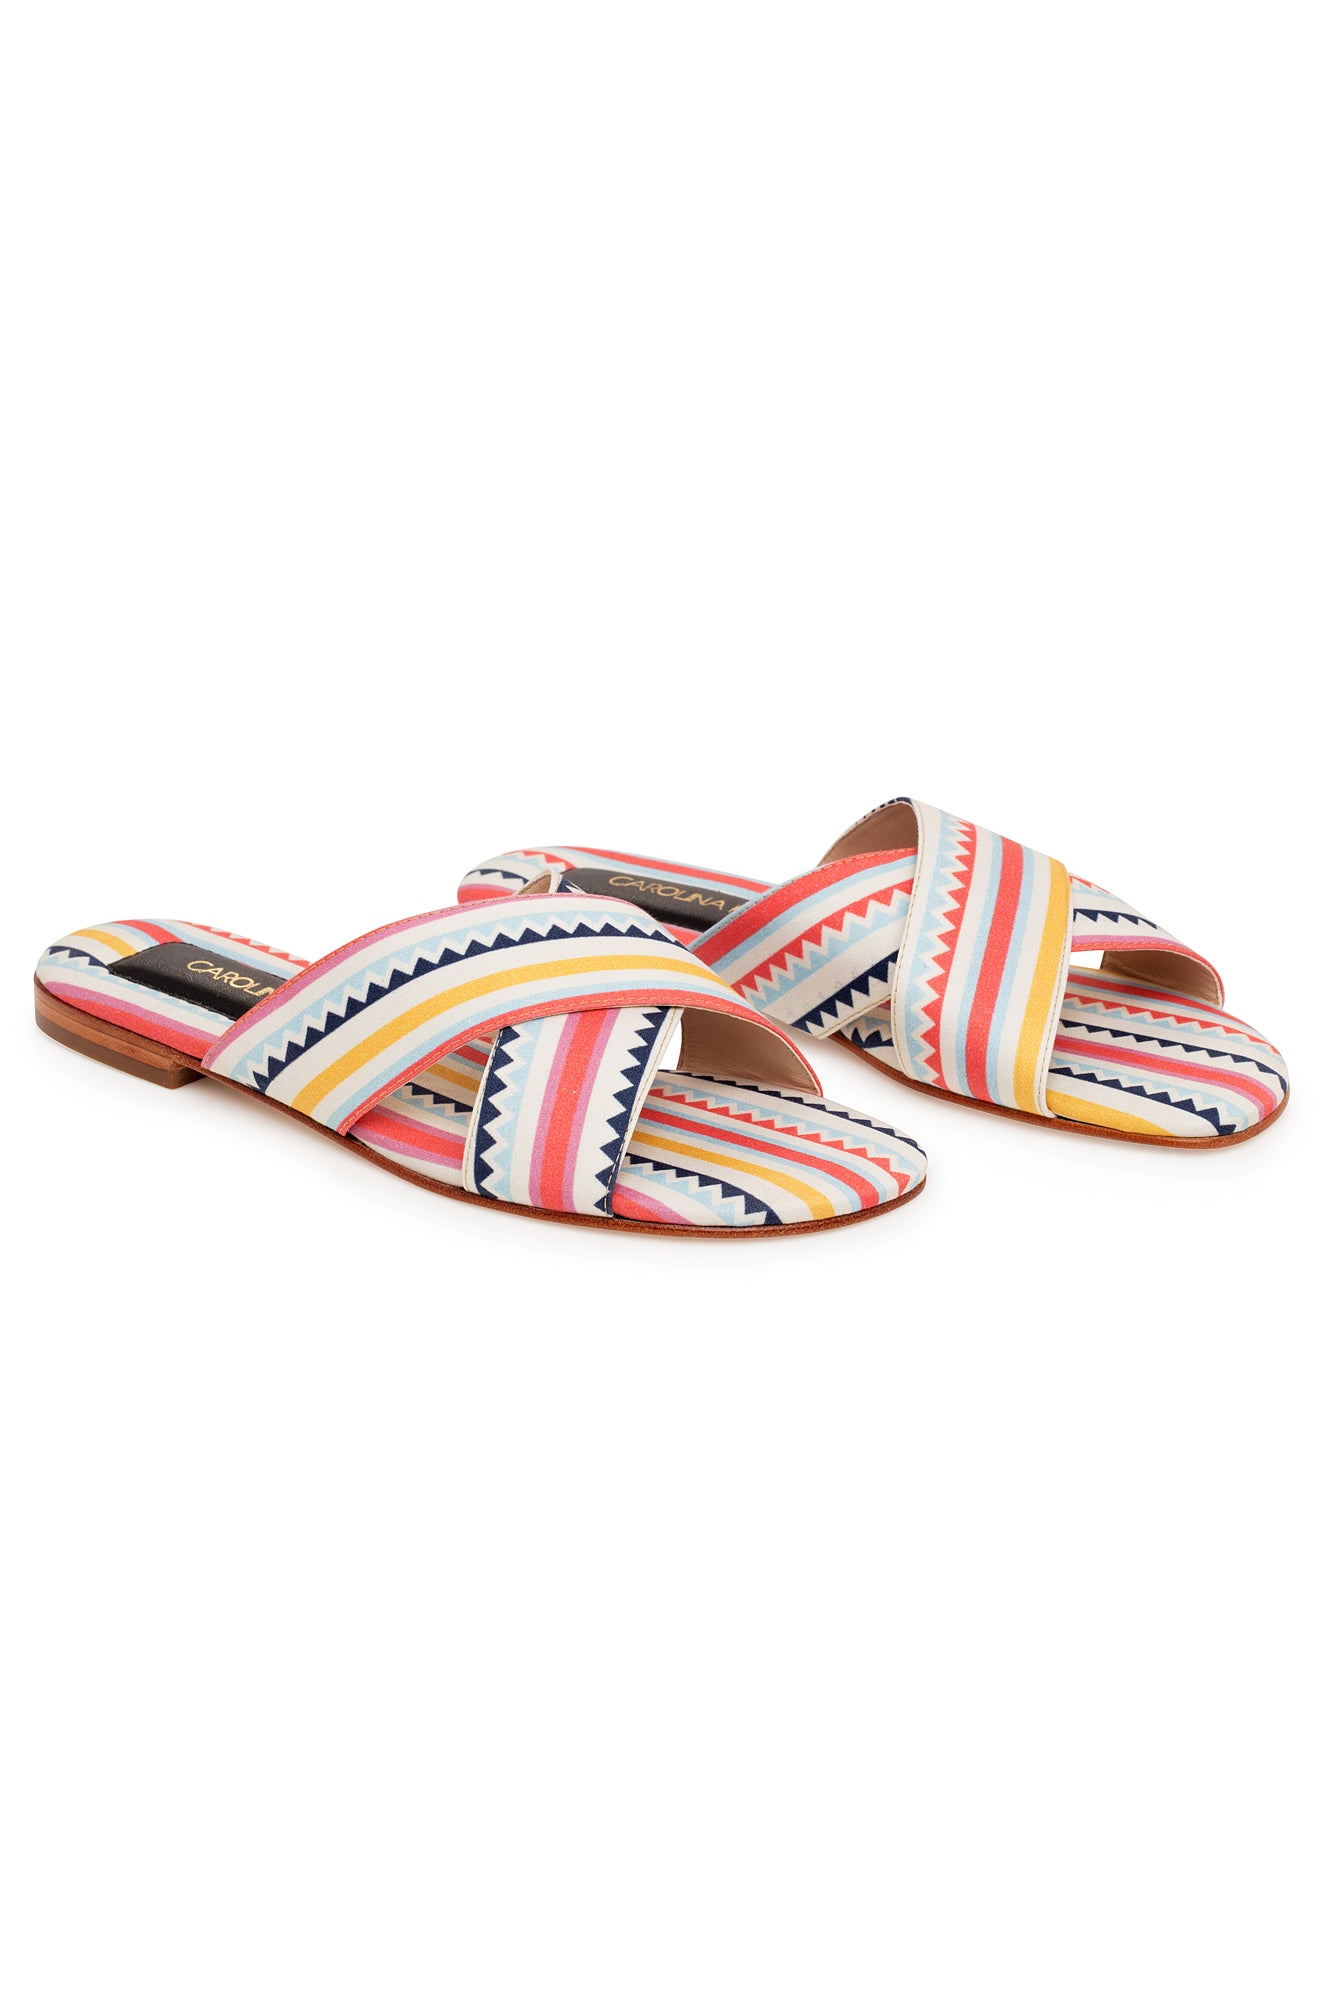 Carolina K Cross Sandal in Multi Triangles